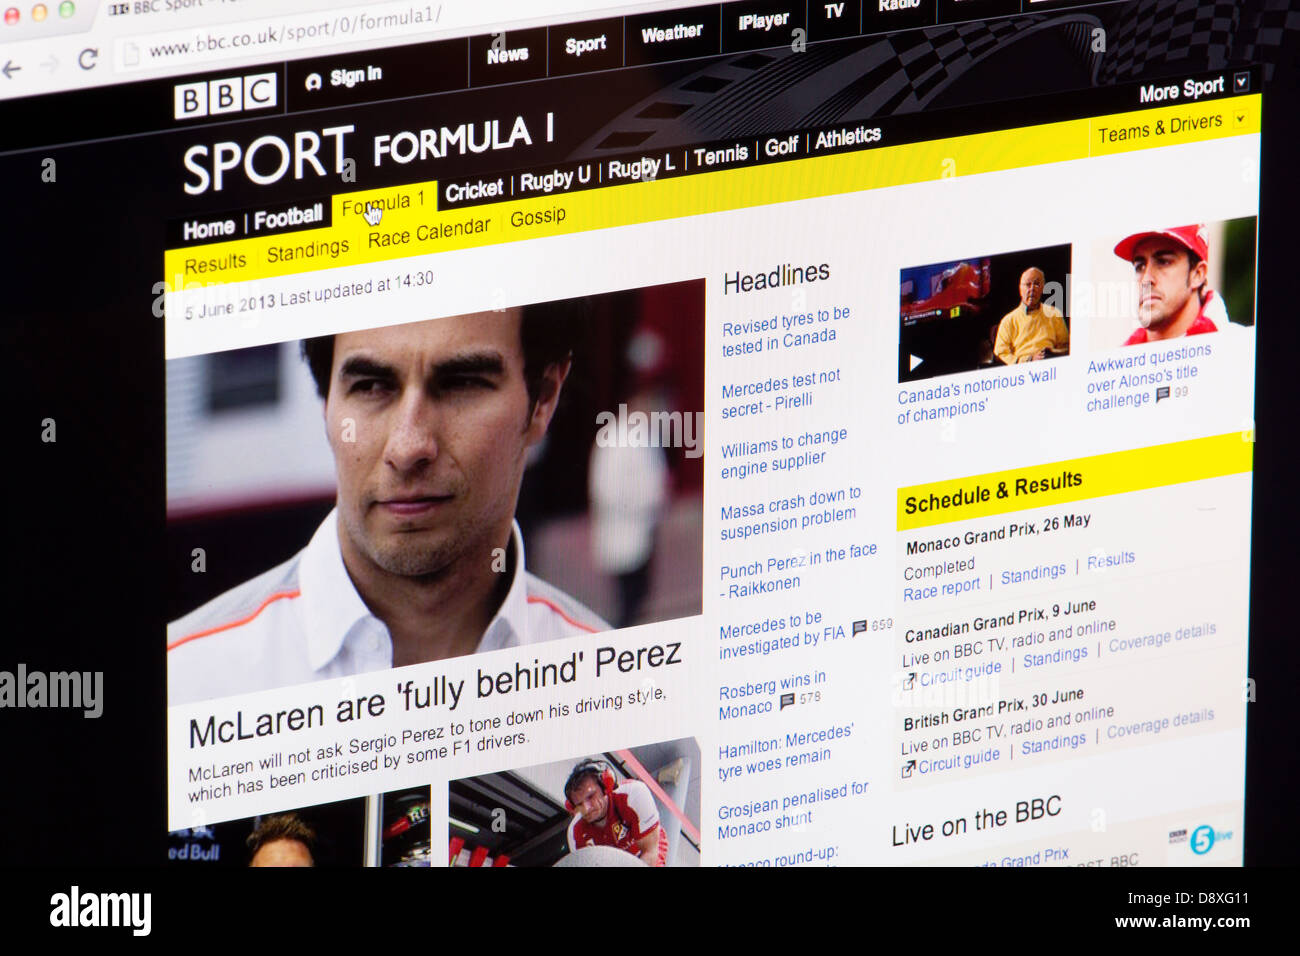 BBC Sport Formula One 1 Website or web page on a laptop screen or computer monitor - Stock Image